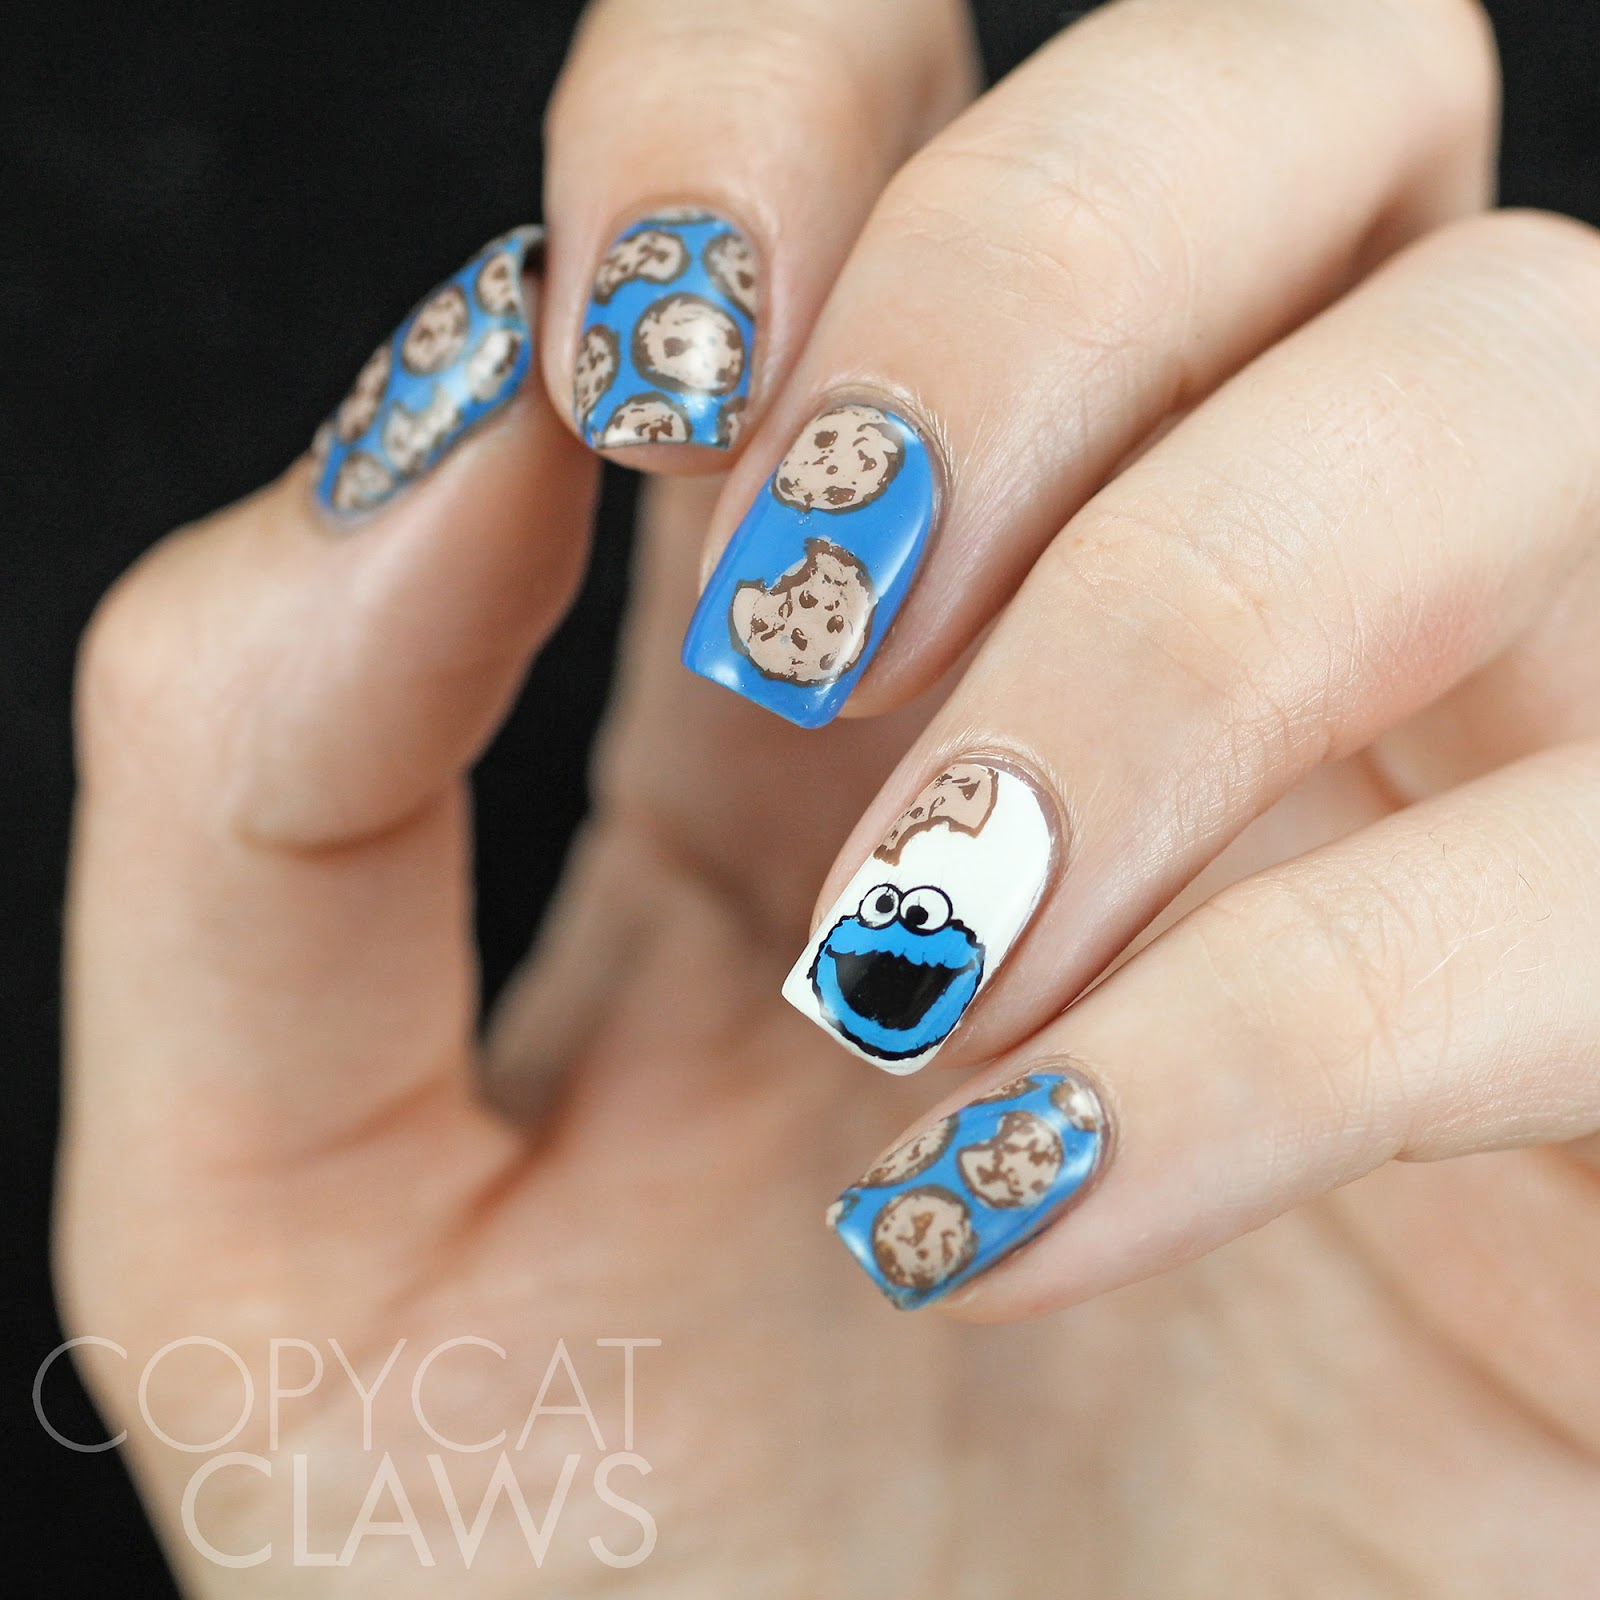 Copycat claws the digit al dozen does food day 3 cookies and cookie monster came from fun 11 stamped with mundo de unas black and filled with mundo de unas blue and white all of it was made all shiny with hk girl voltagebd Images